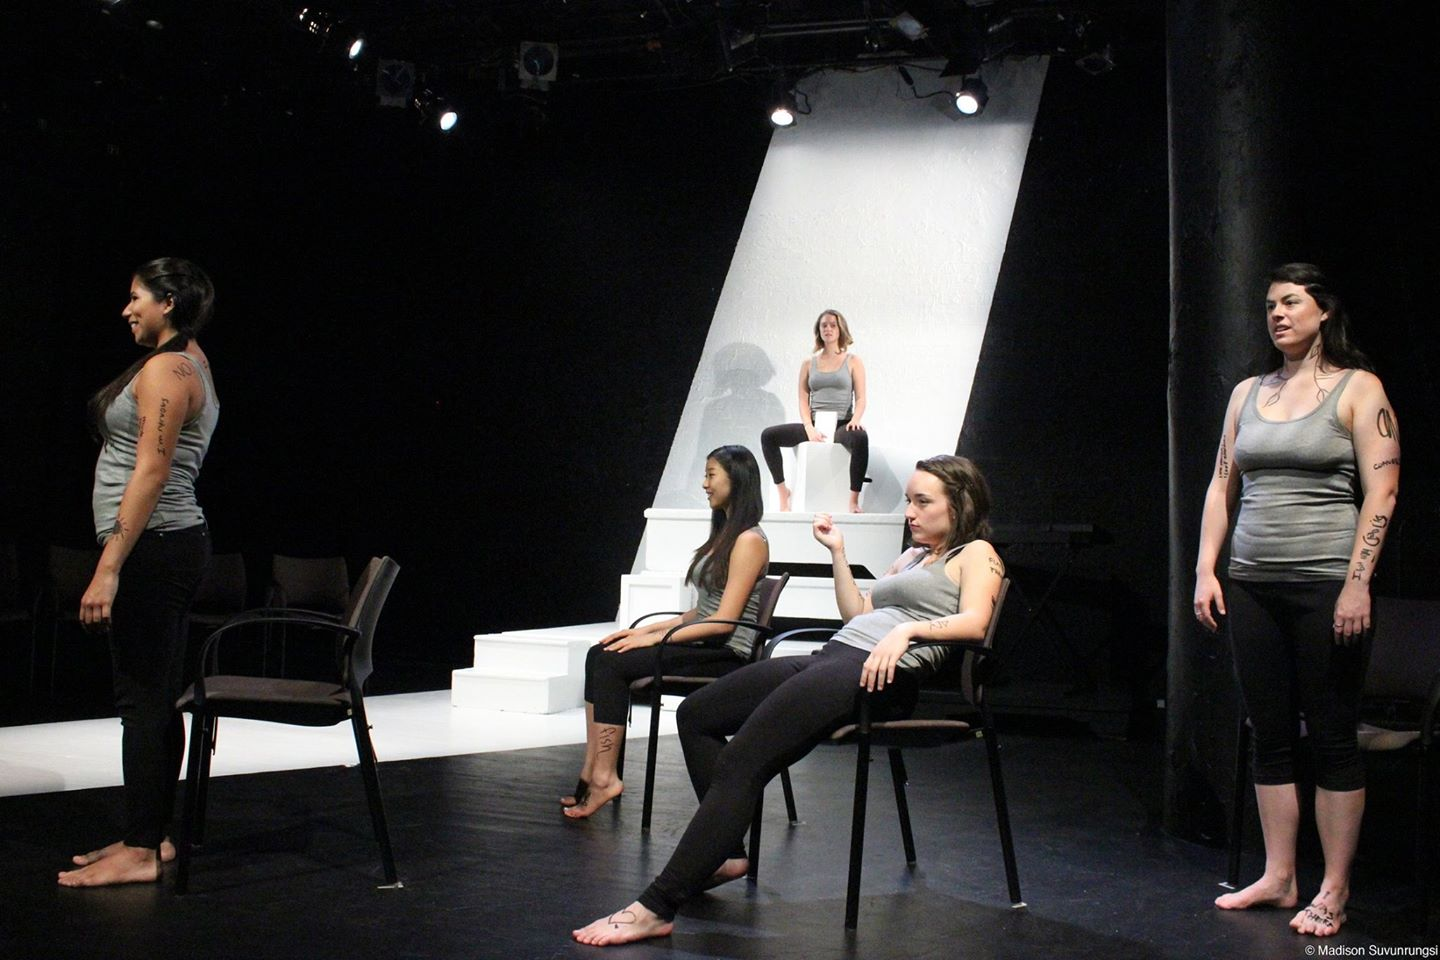 The cast of The Vagina Monologues on stage.  Photo by Maddie Suvunrungsi